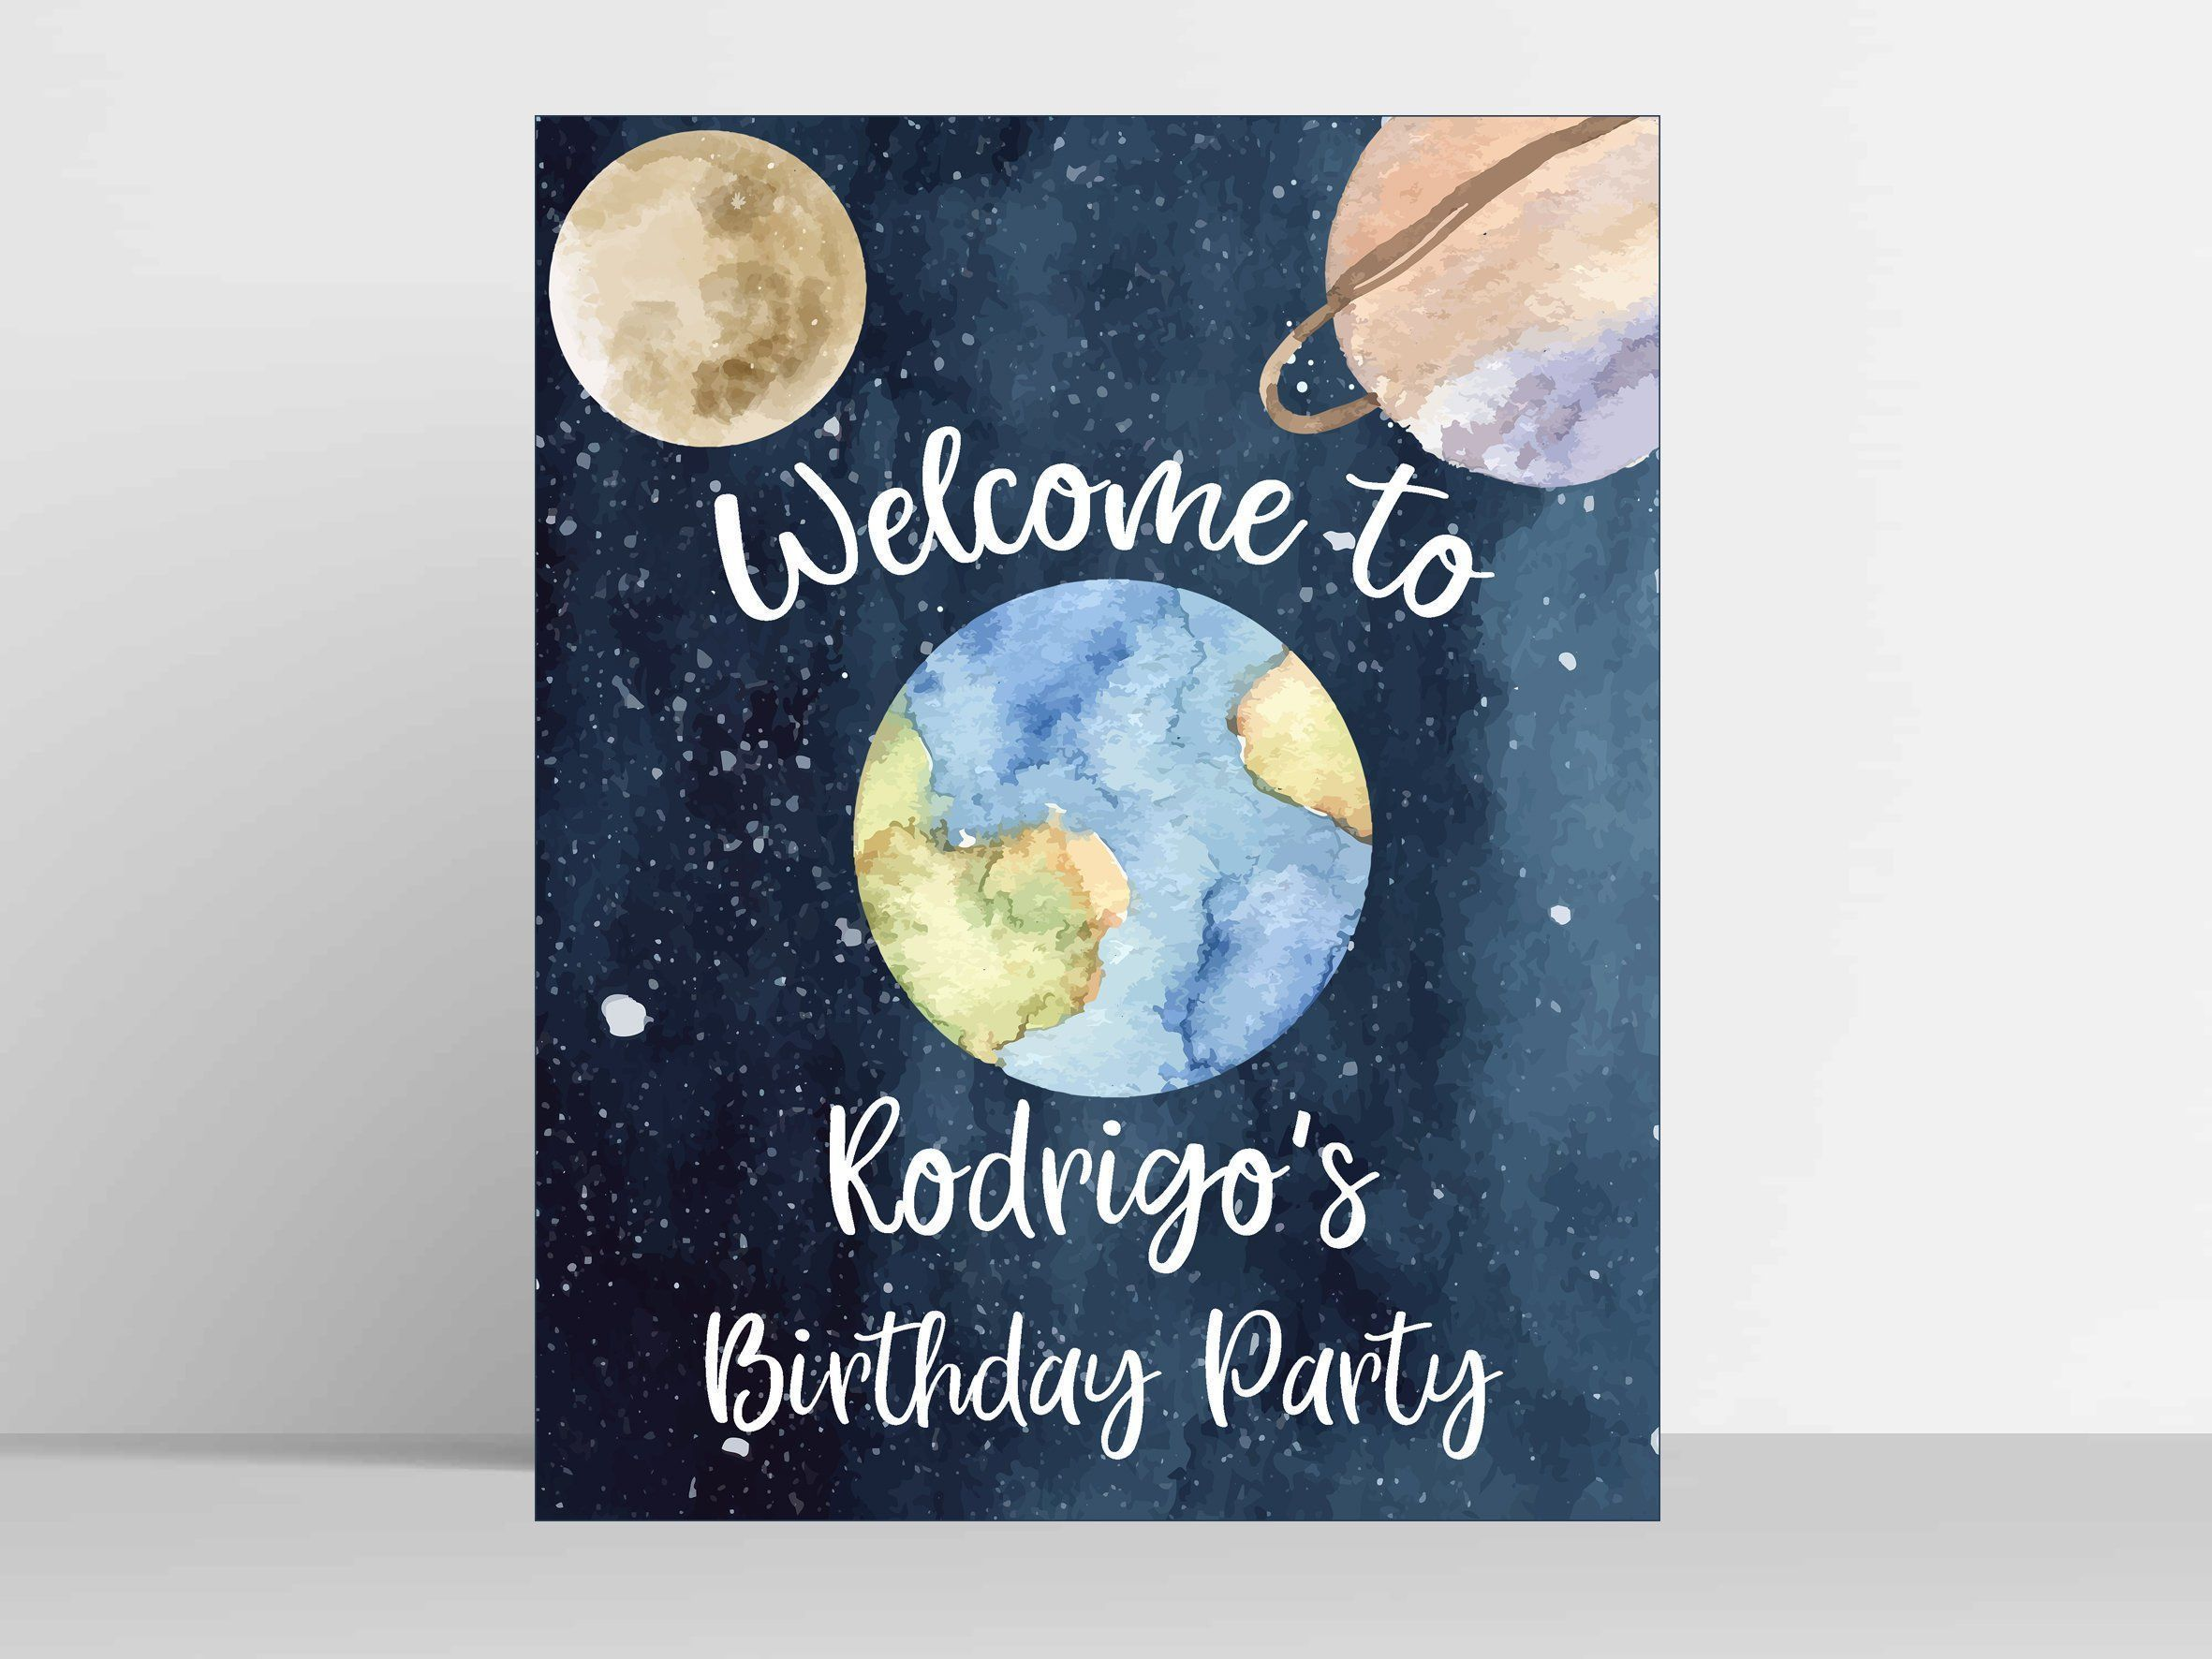 Outer Space Welcome sign, Printable Welcome sign, Outer Space sign, Welcome Sign, Space birthday, Space decor, Outer Space Party decor #outerspaceparty Outer Space Welcome sign, Printable Welcome sign, Outer Space sign, Welcome Sign, Space birthday, Space decor, Outer Space Party decor #outerspaceparty Outer Space Welcome sign, Printable Welcome sign, Outer Space sign, Welcome Sign, Space birthday, Space decor, Outer Space Party decor #outerspaceparty Outer Space Welcome sign, Printable Welcome #outerspaceparty